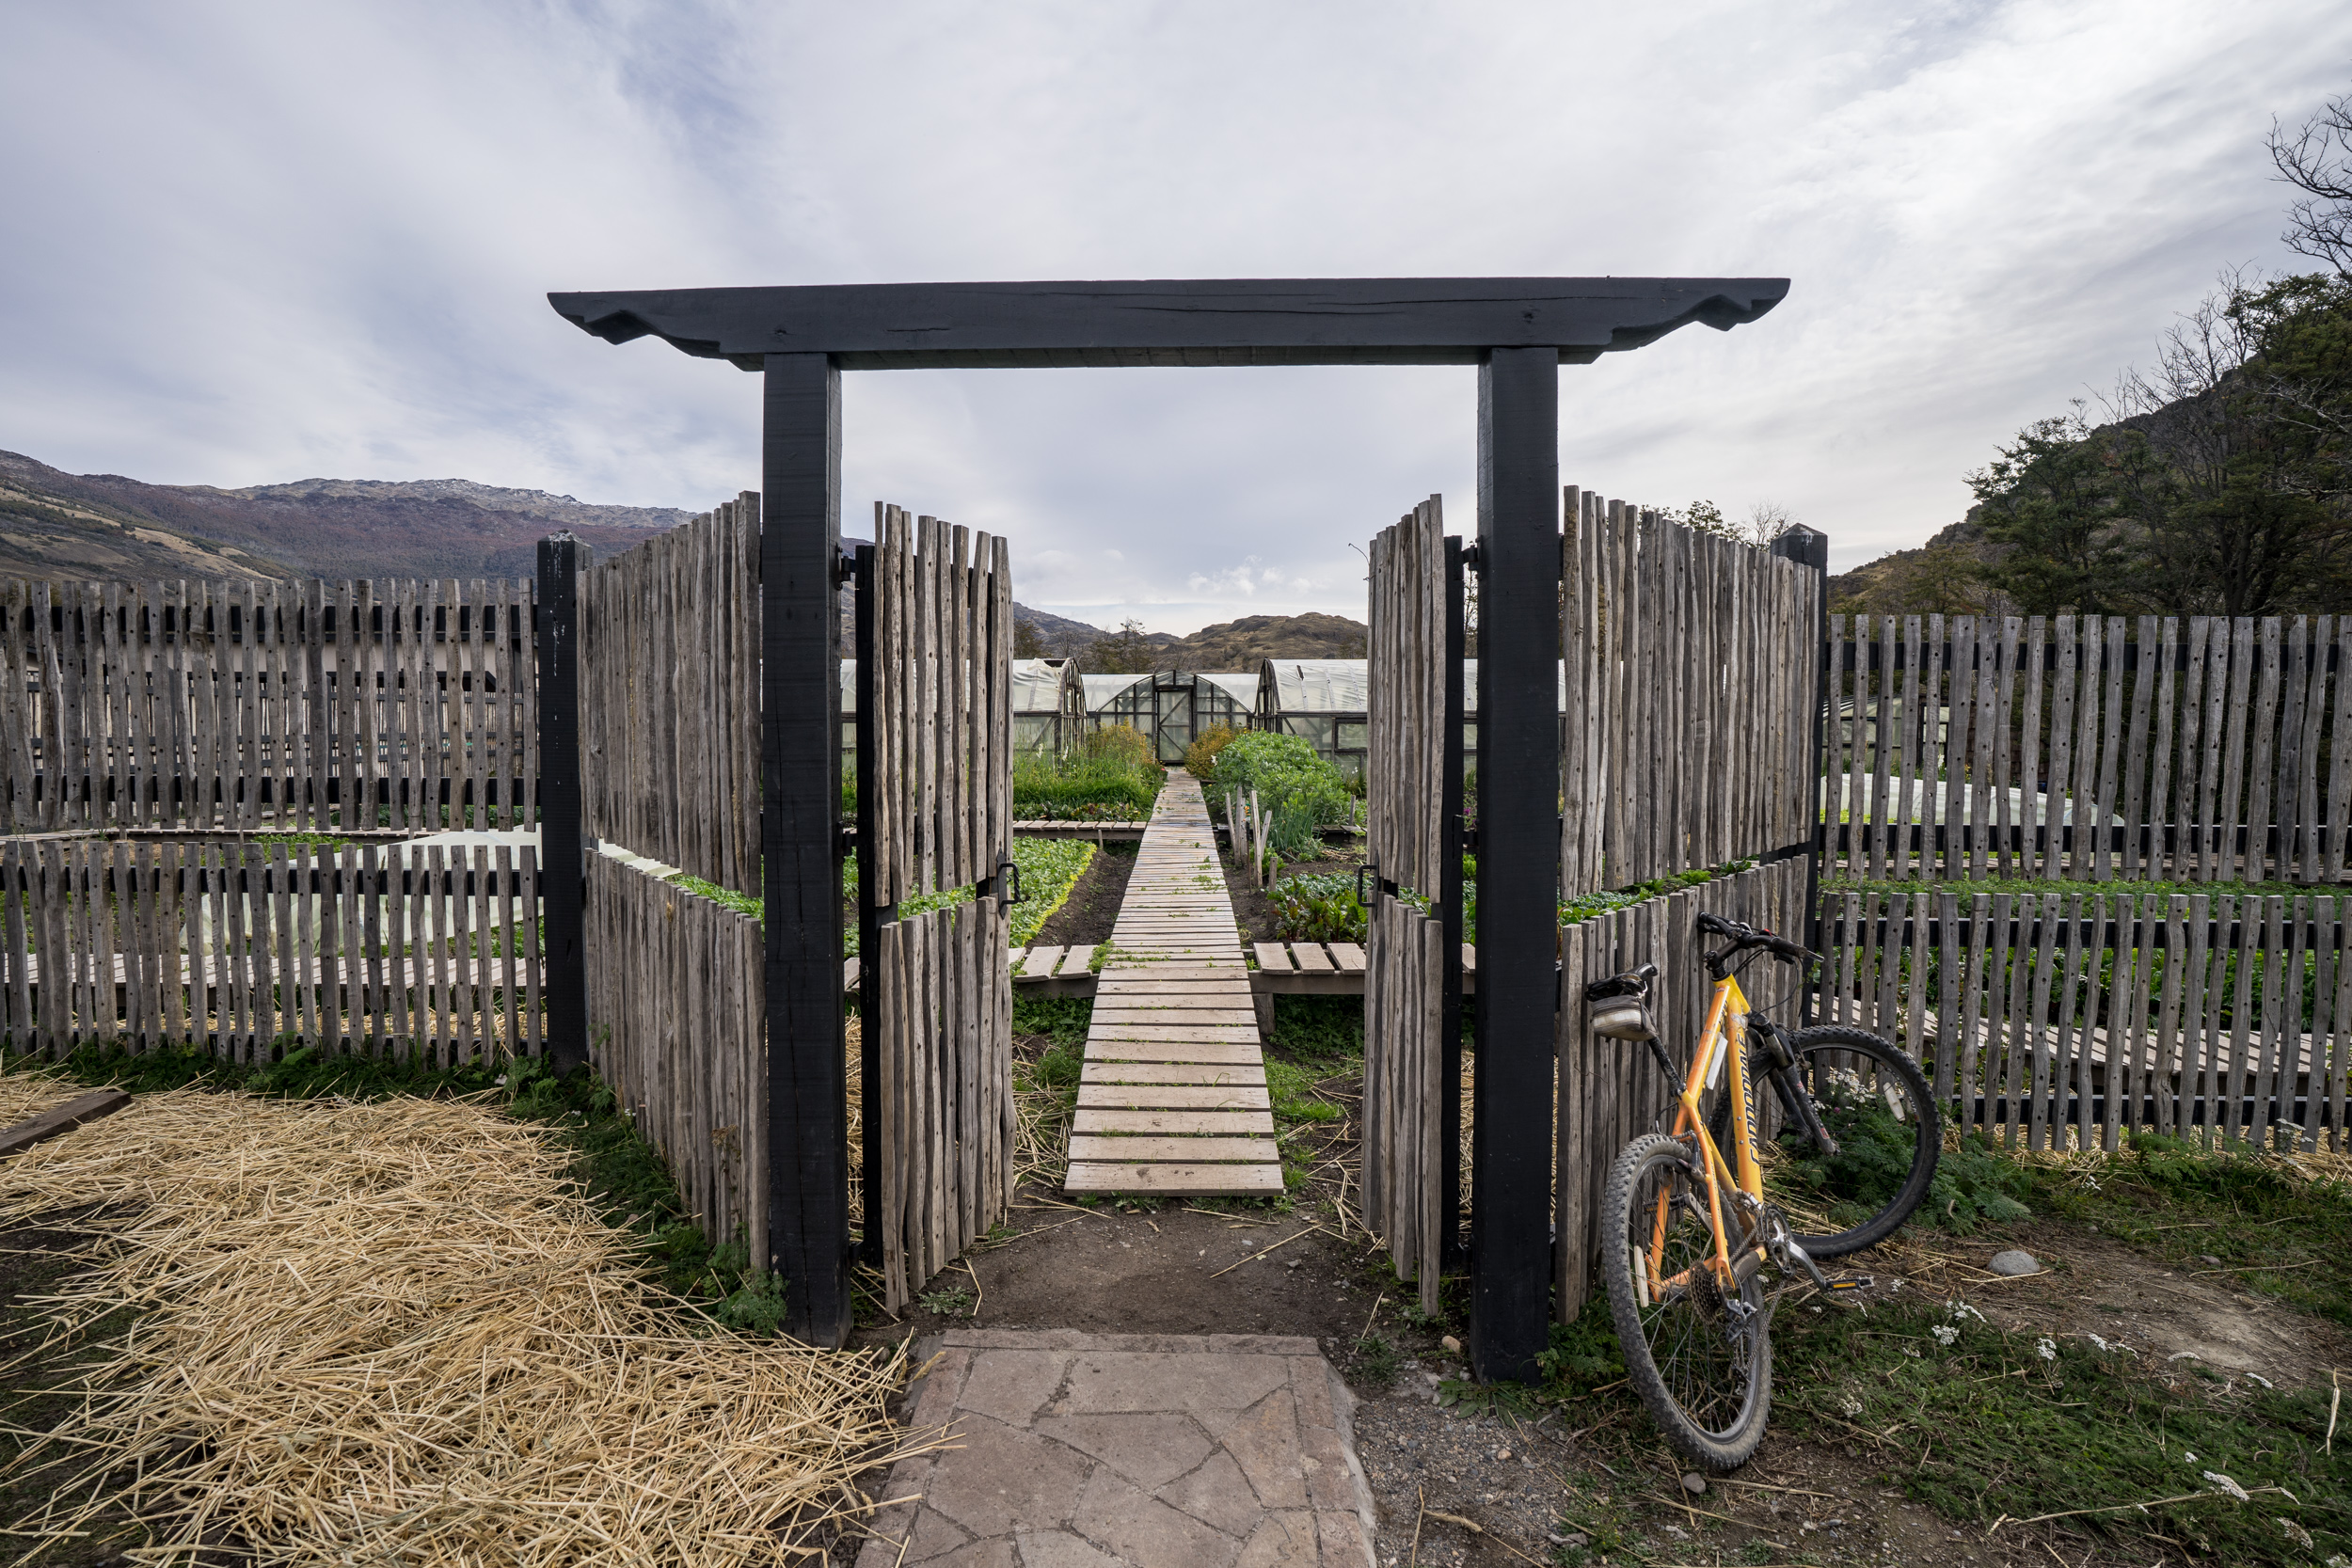 Francisco's bike stationed in front of the vegetable garden in Patagonia Park, Chile